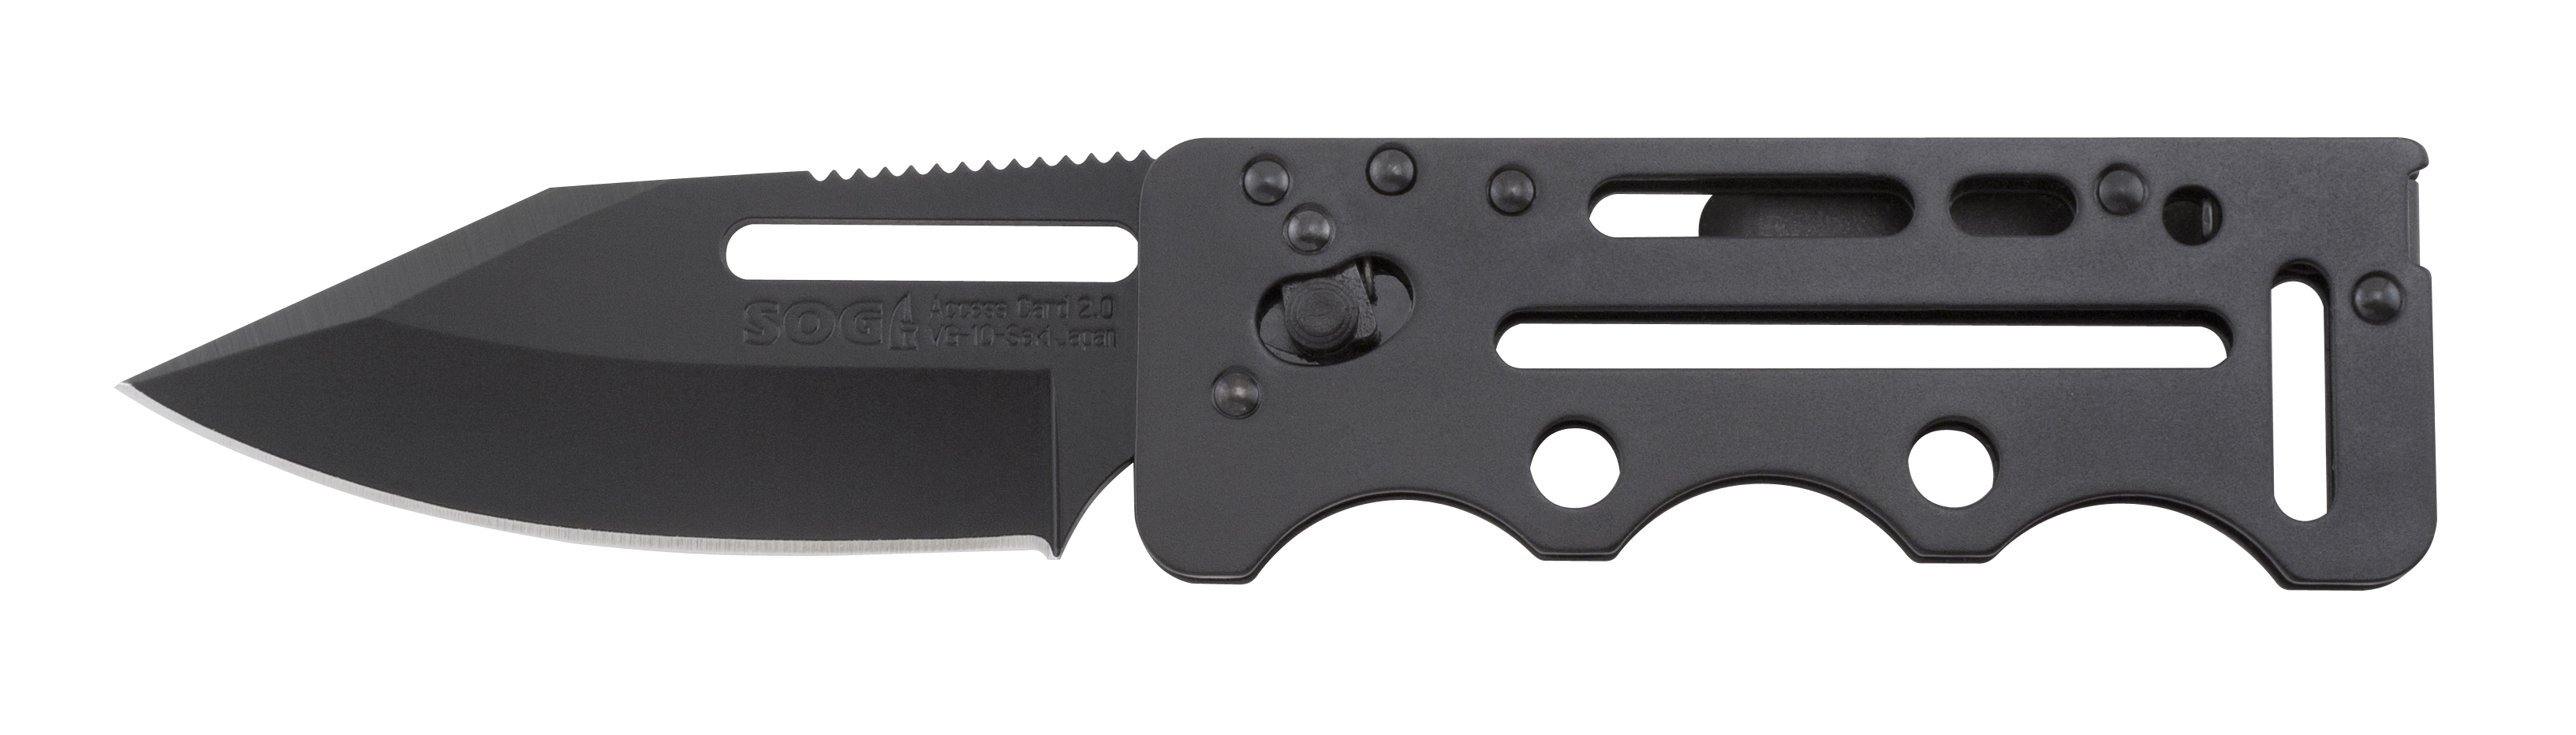 SOG Access Card 2.0 - Tactical Black